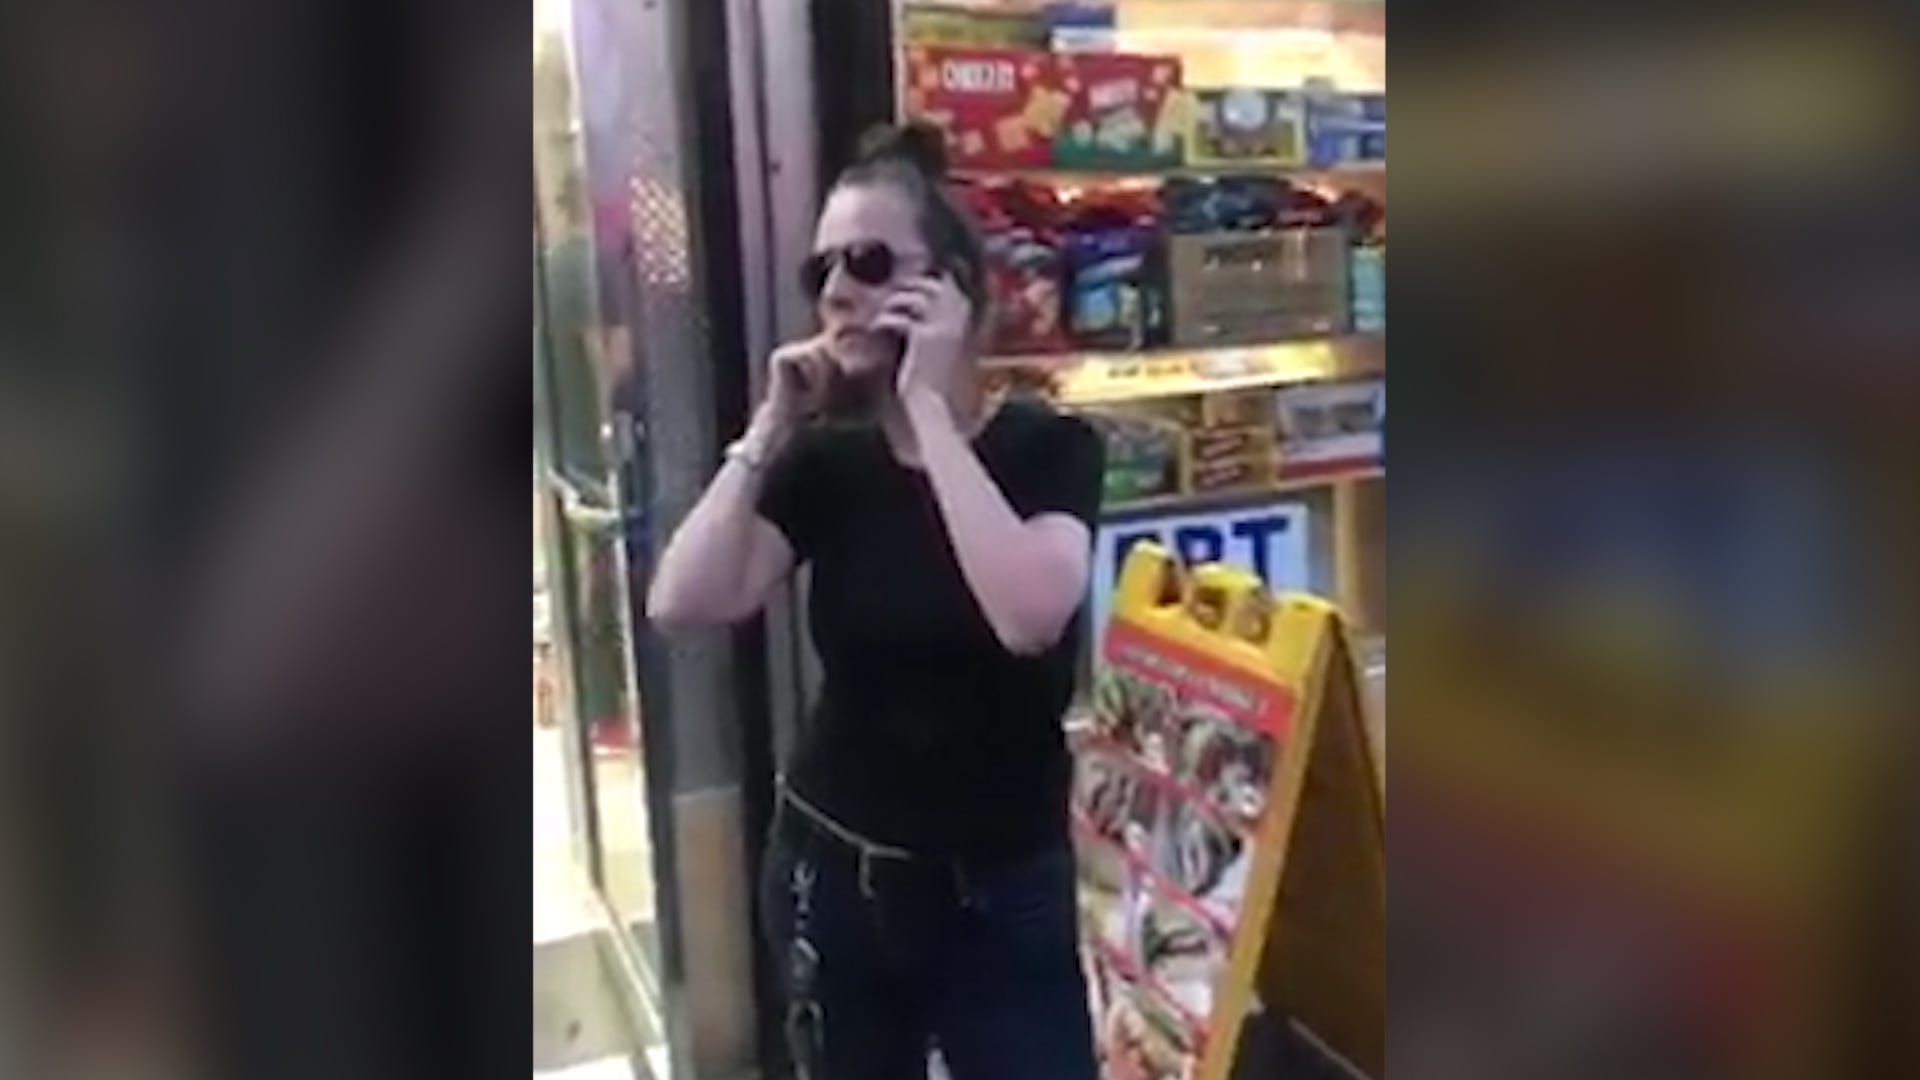 UPDATED This Womans Tearful Viral Facebook Video About a Walmart Cashier Seems to Be a Hoax UPDATED This Womans Tearful Viral Facebook Video About a Walmart Cashier Seems to Be a Hoax new images